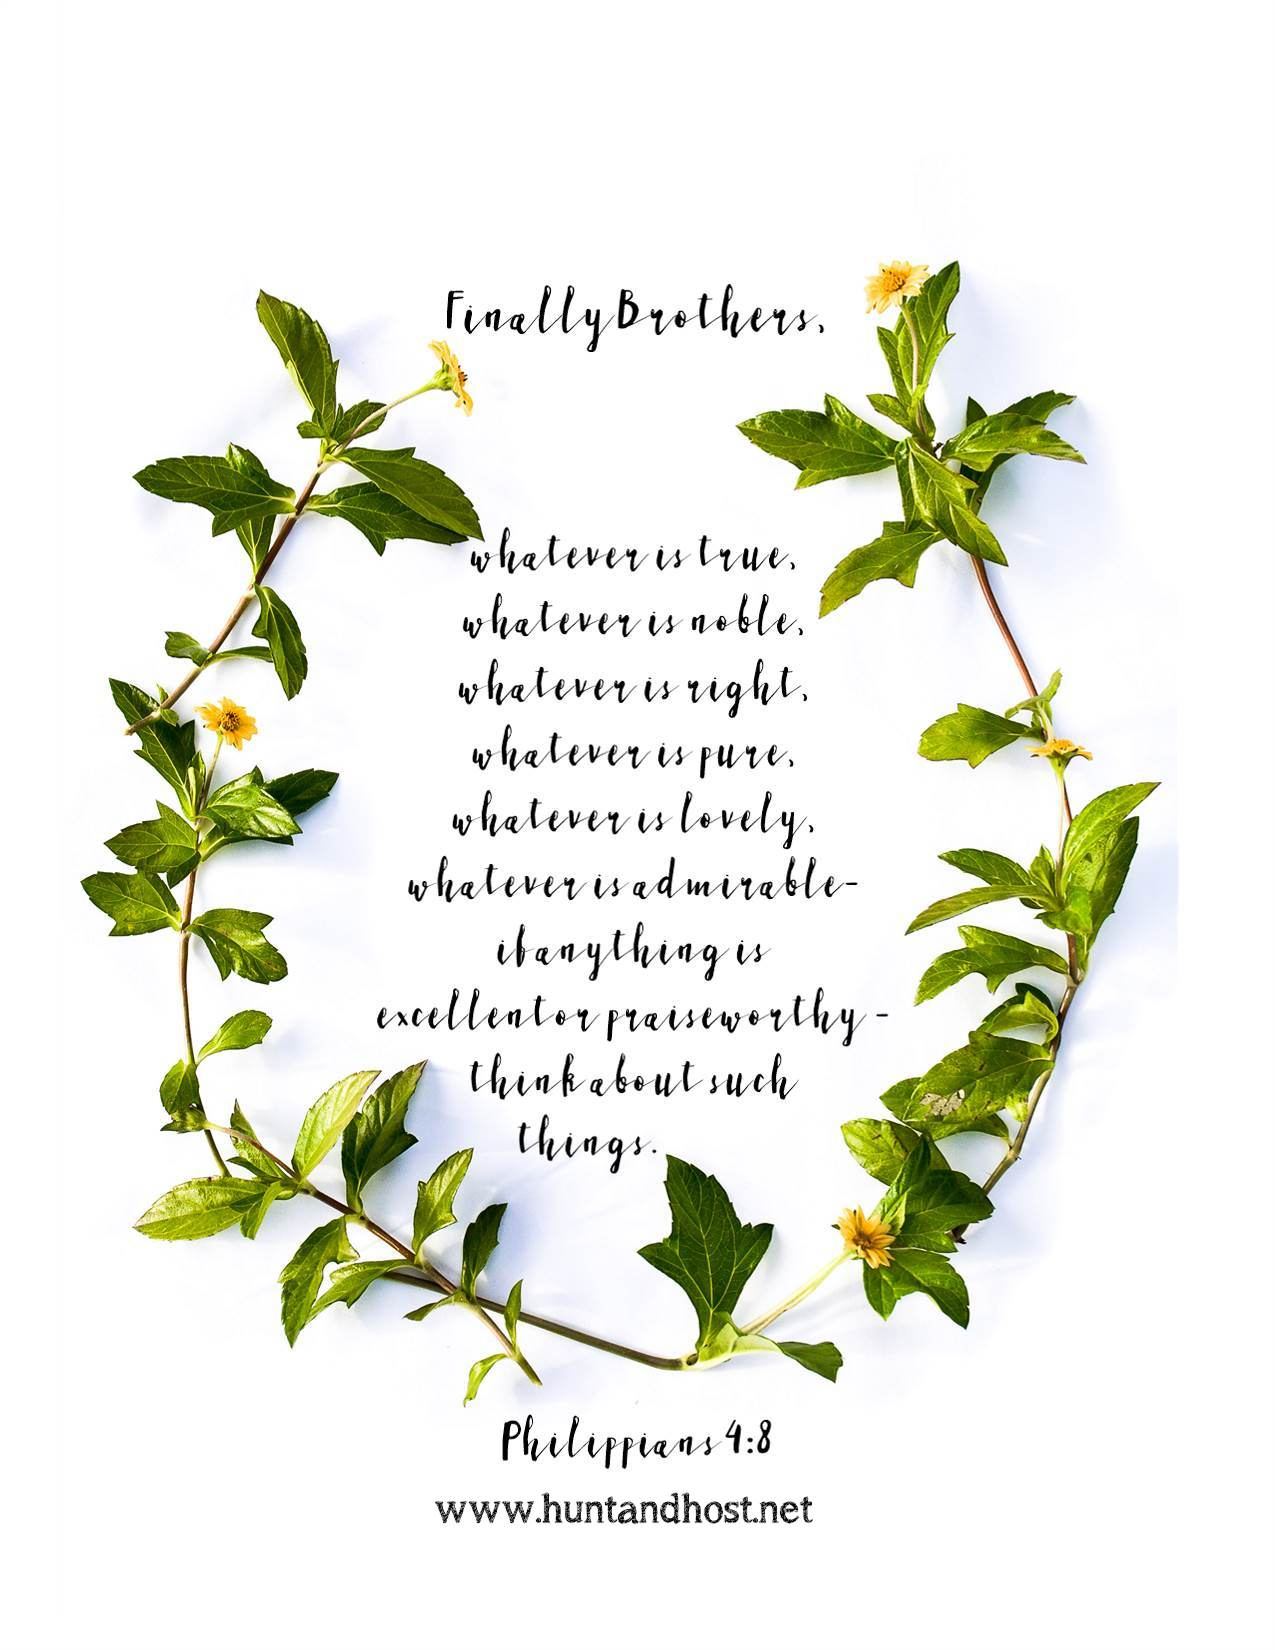 Free scripture printables Finally brothers, whatever is true, whatever is noble, whatever is right, whatever is pure, whatever is lovely, whatever is admirable- if anything is excellent or praiseworthy- think about such things. Phillipians 4:8